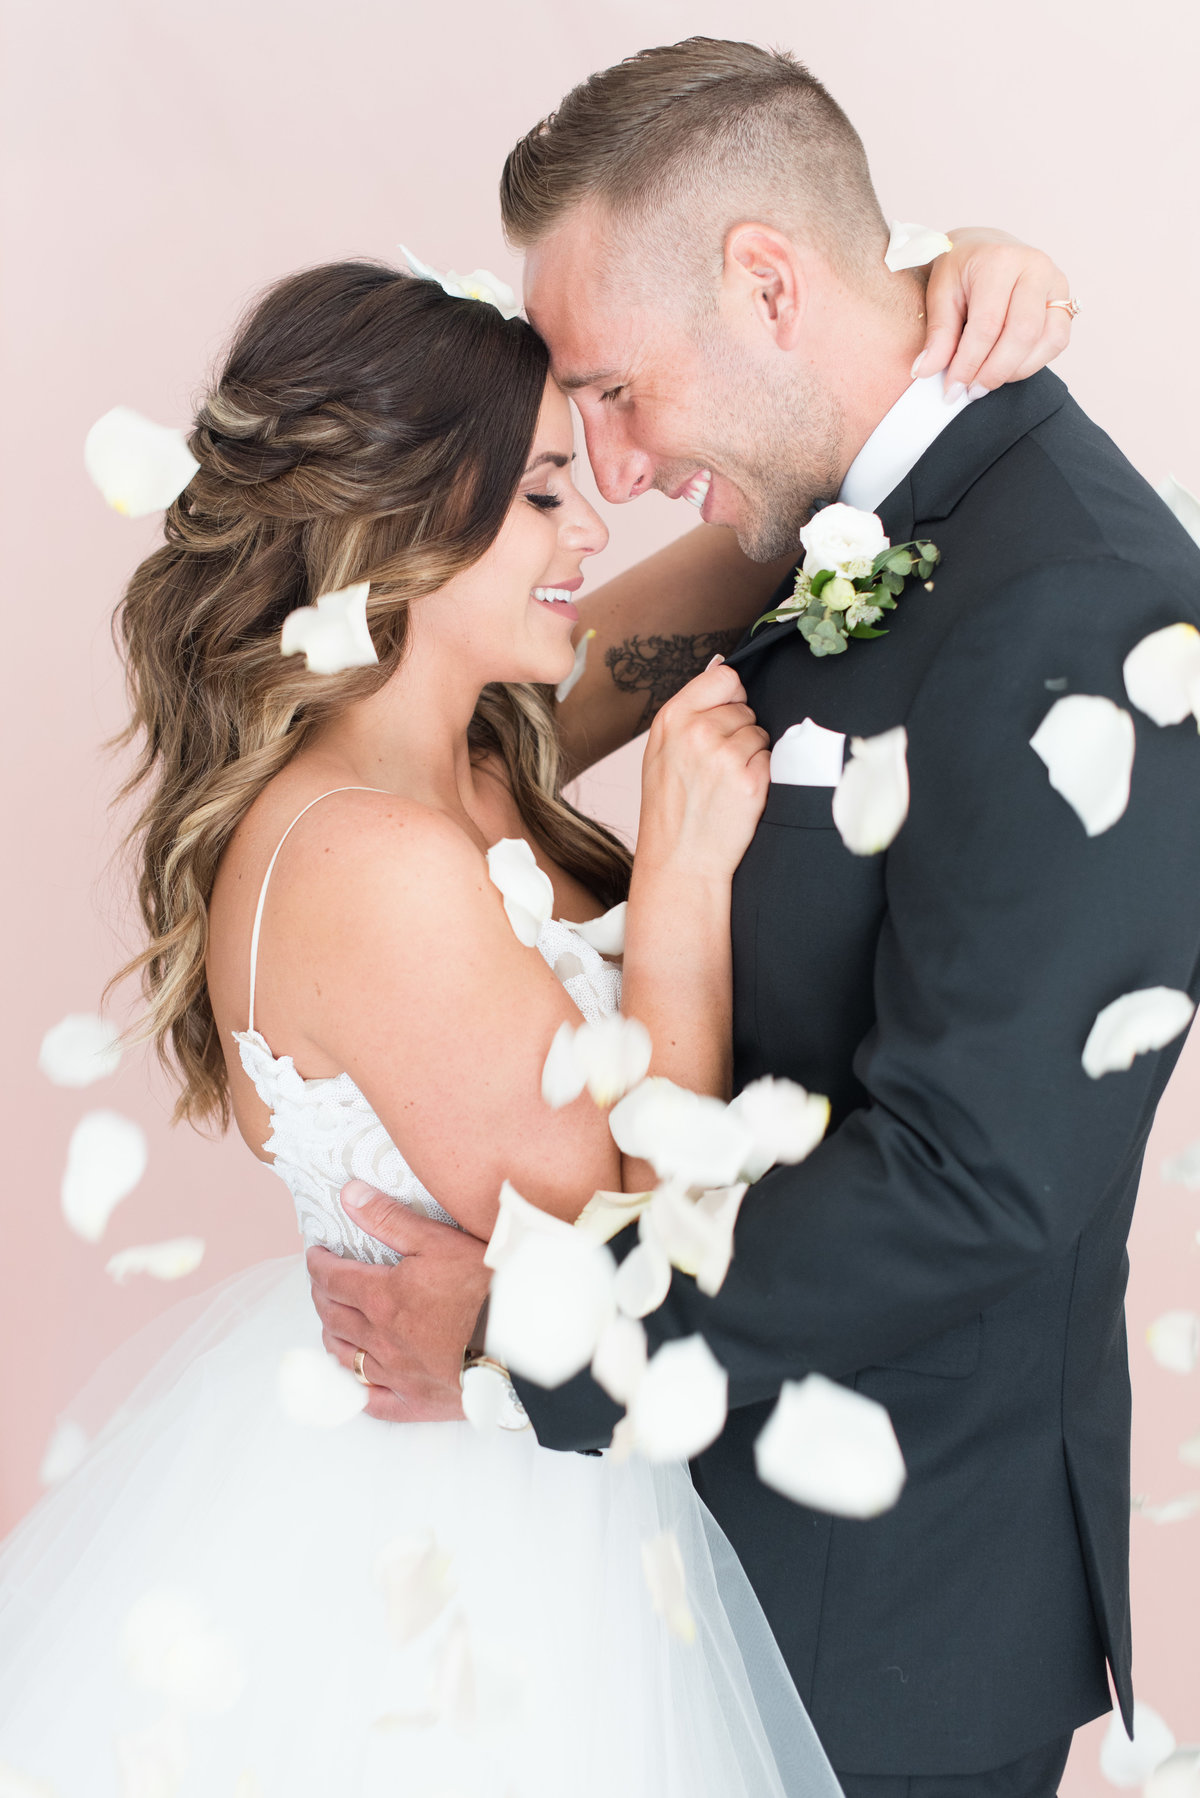 Bride and groom touch foreheads while being showered with white rose petals